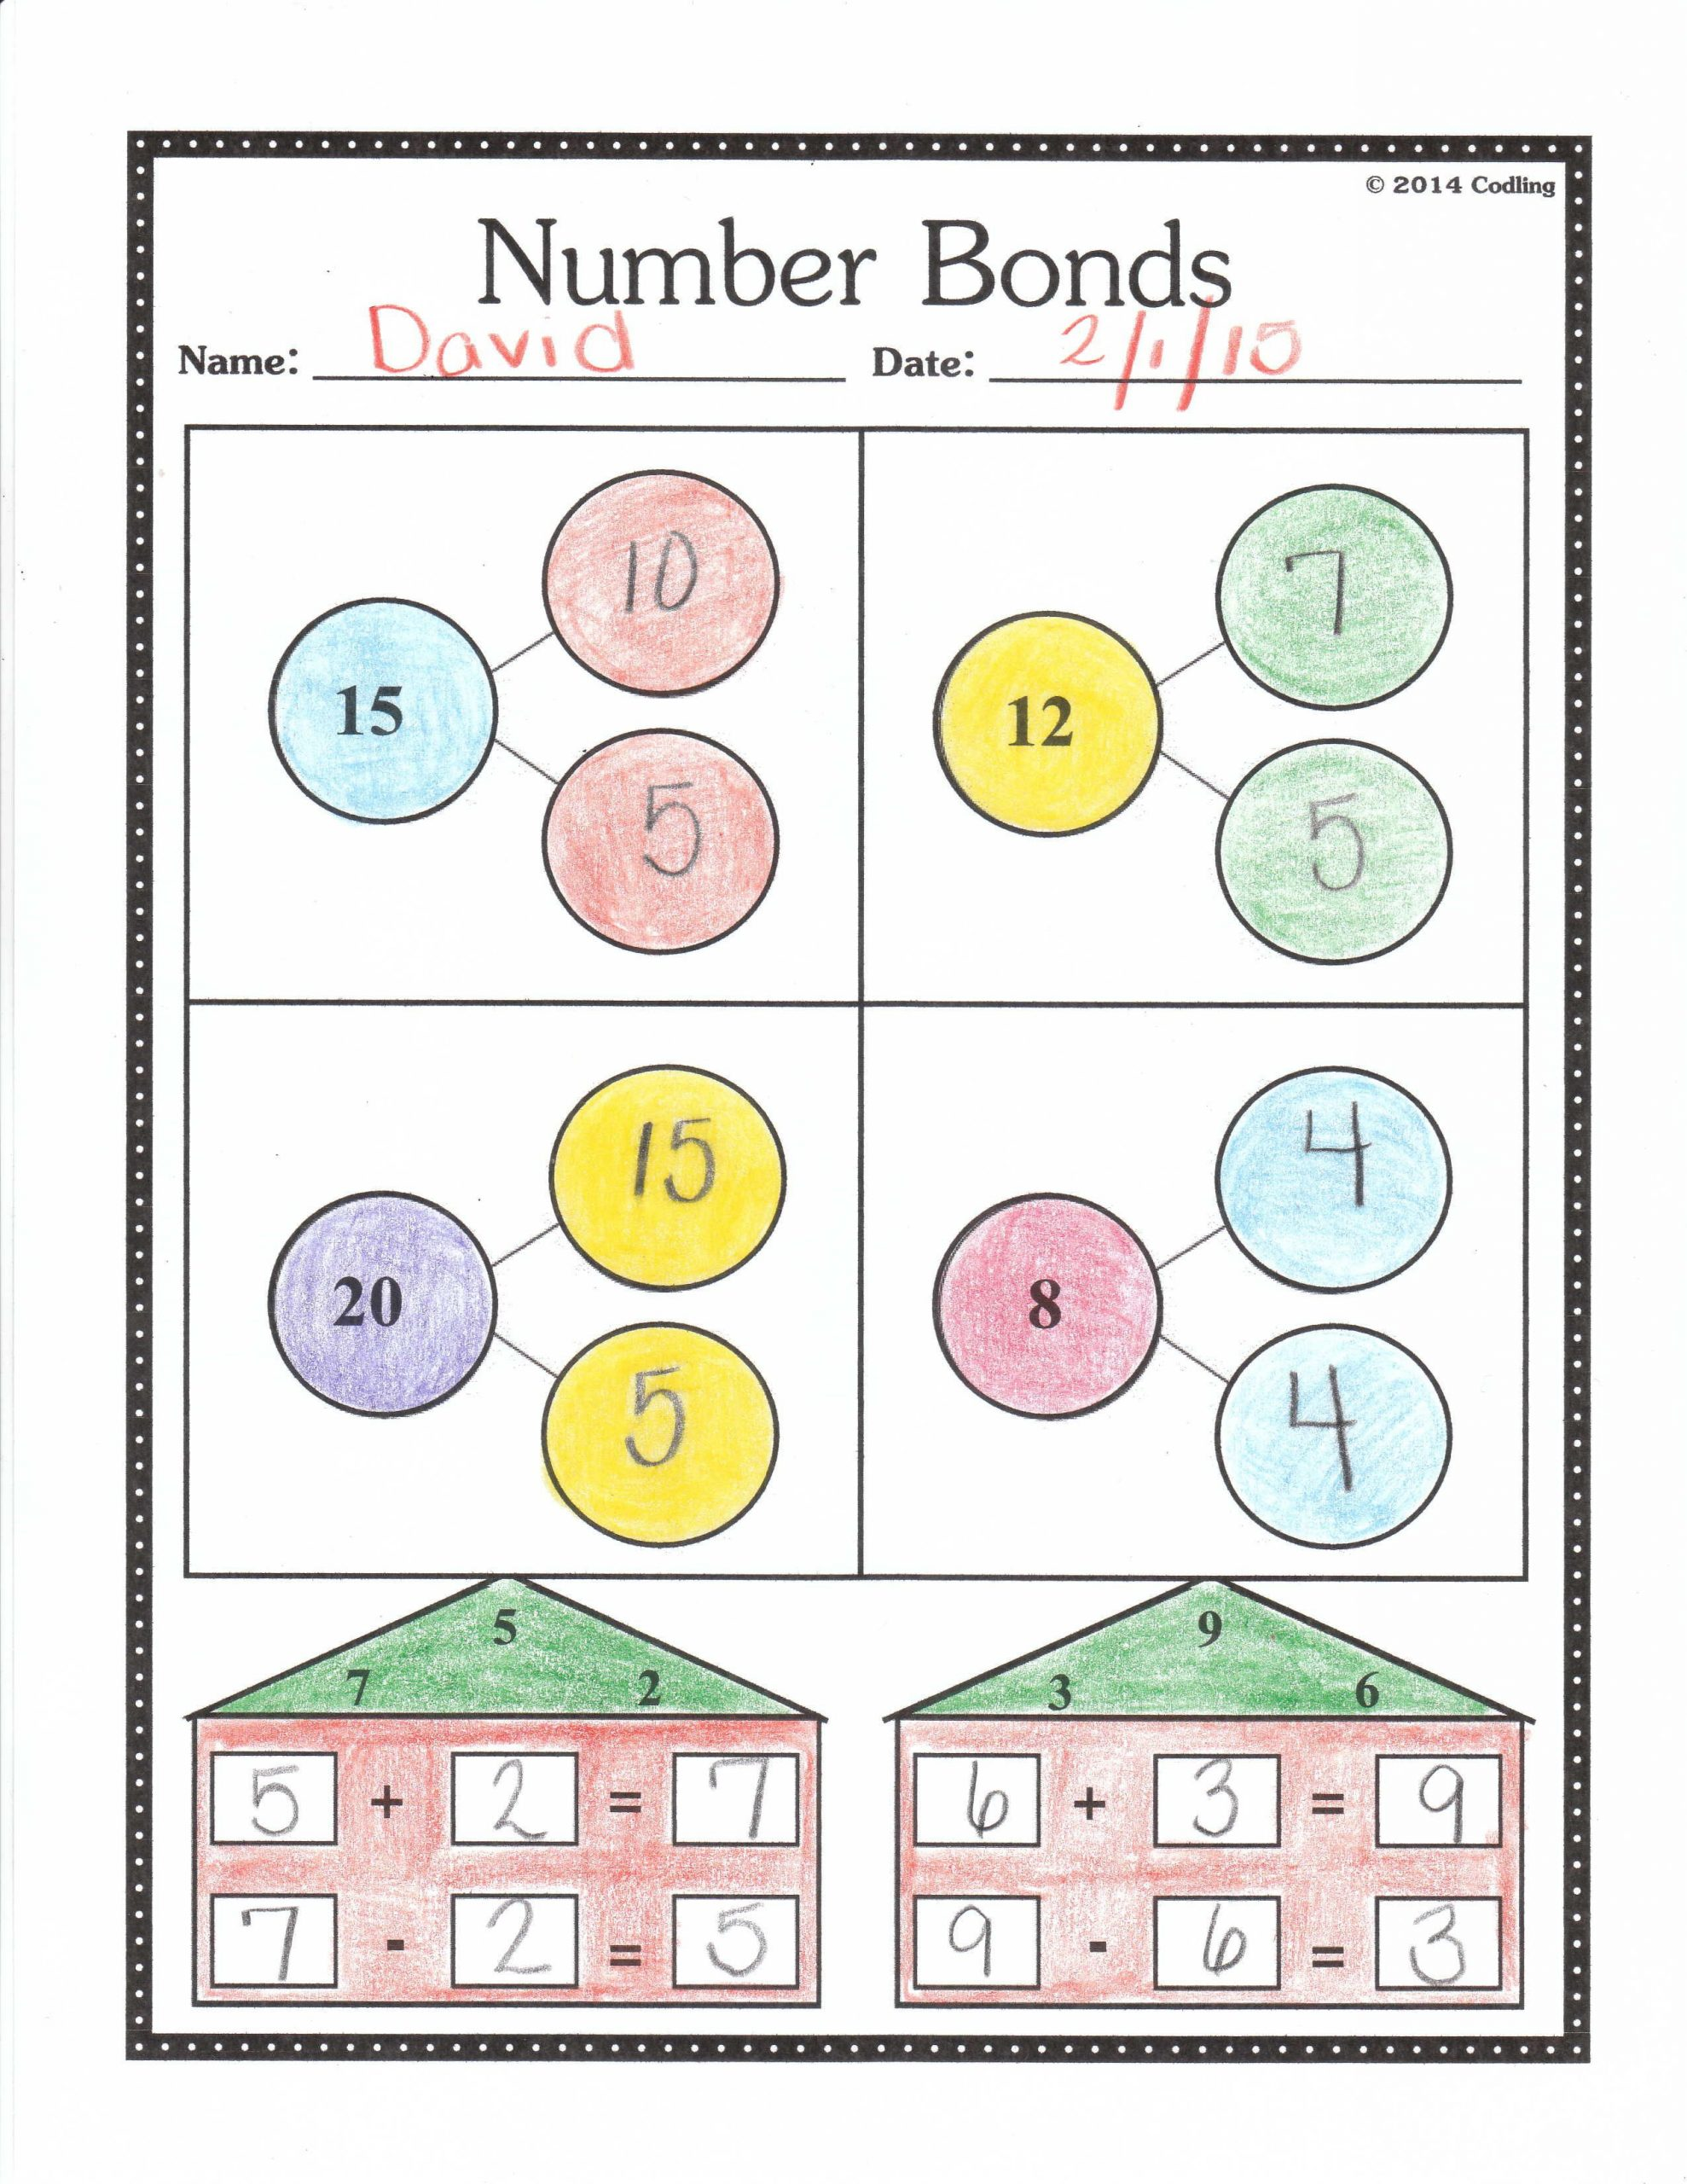 Number Bonds Worksheets 1st Grade Number Bonds Worksheet First Grade